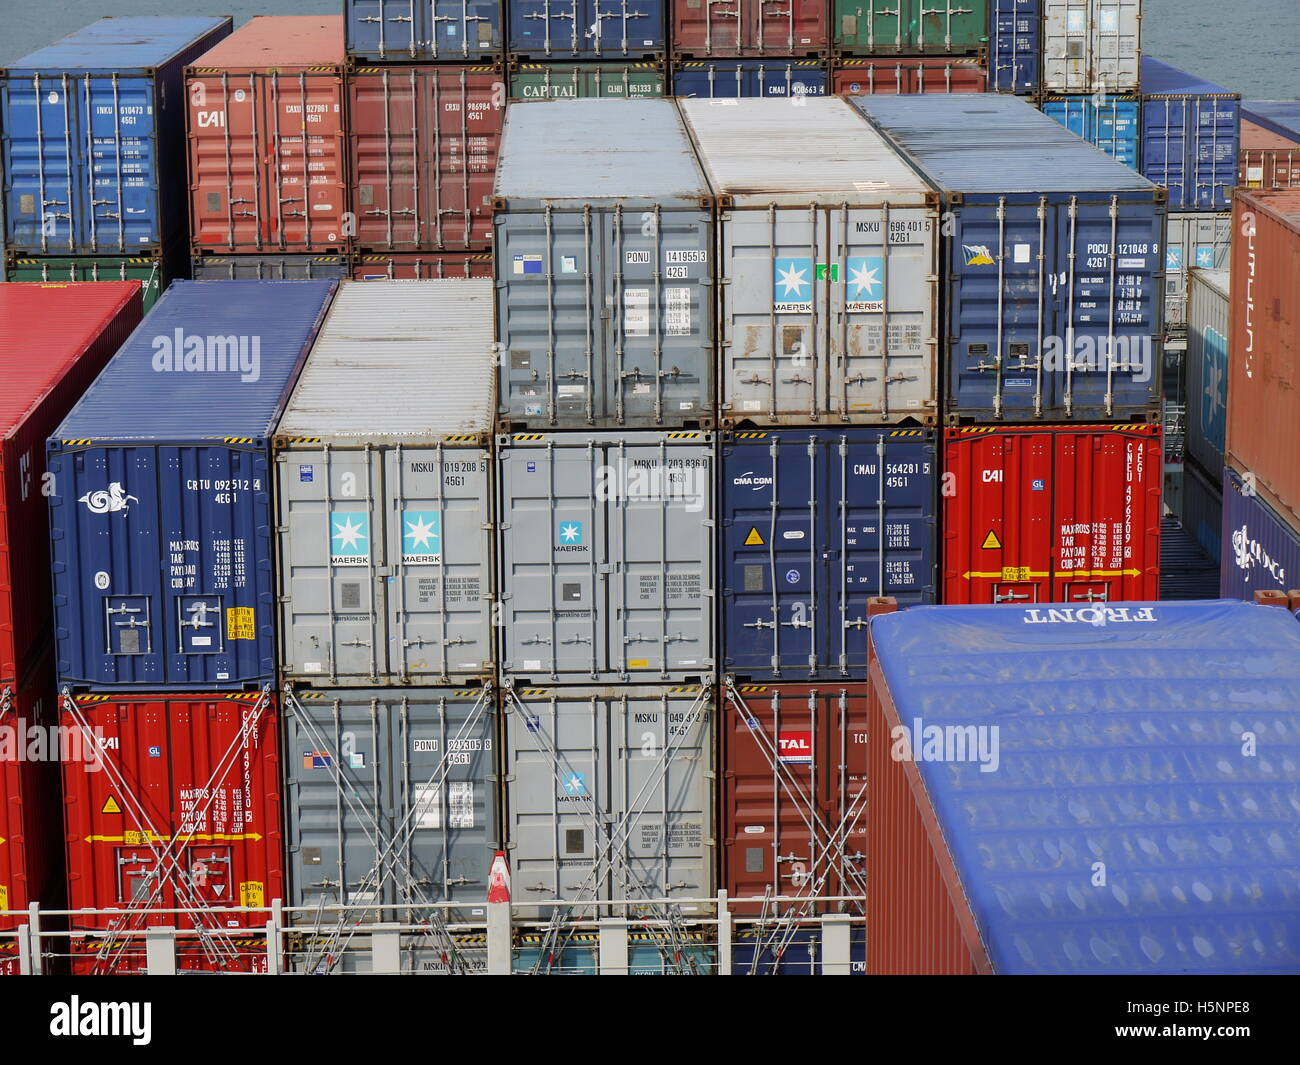 Containers on the deck of a ship ready for travel from Europe to China - Stock Image